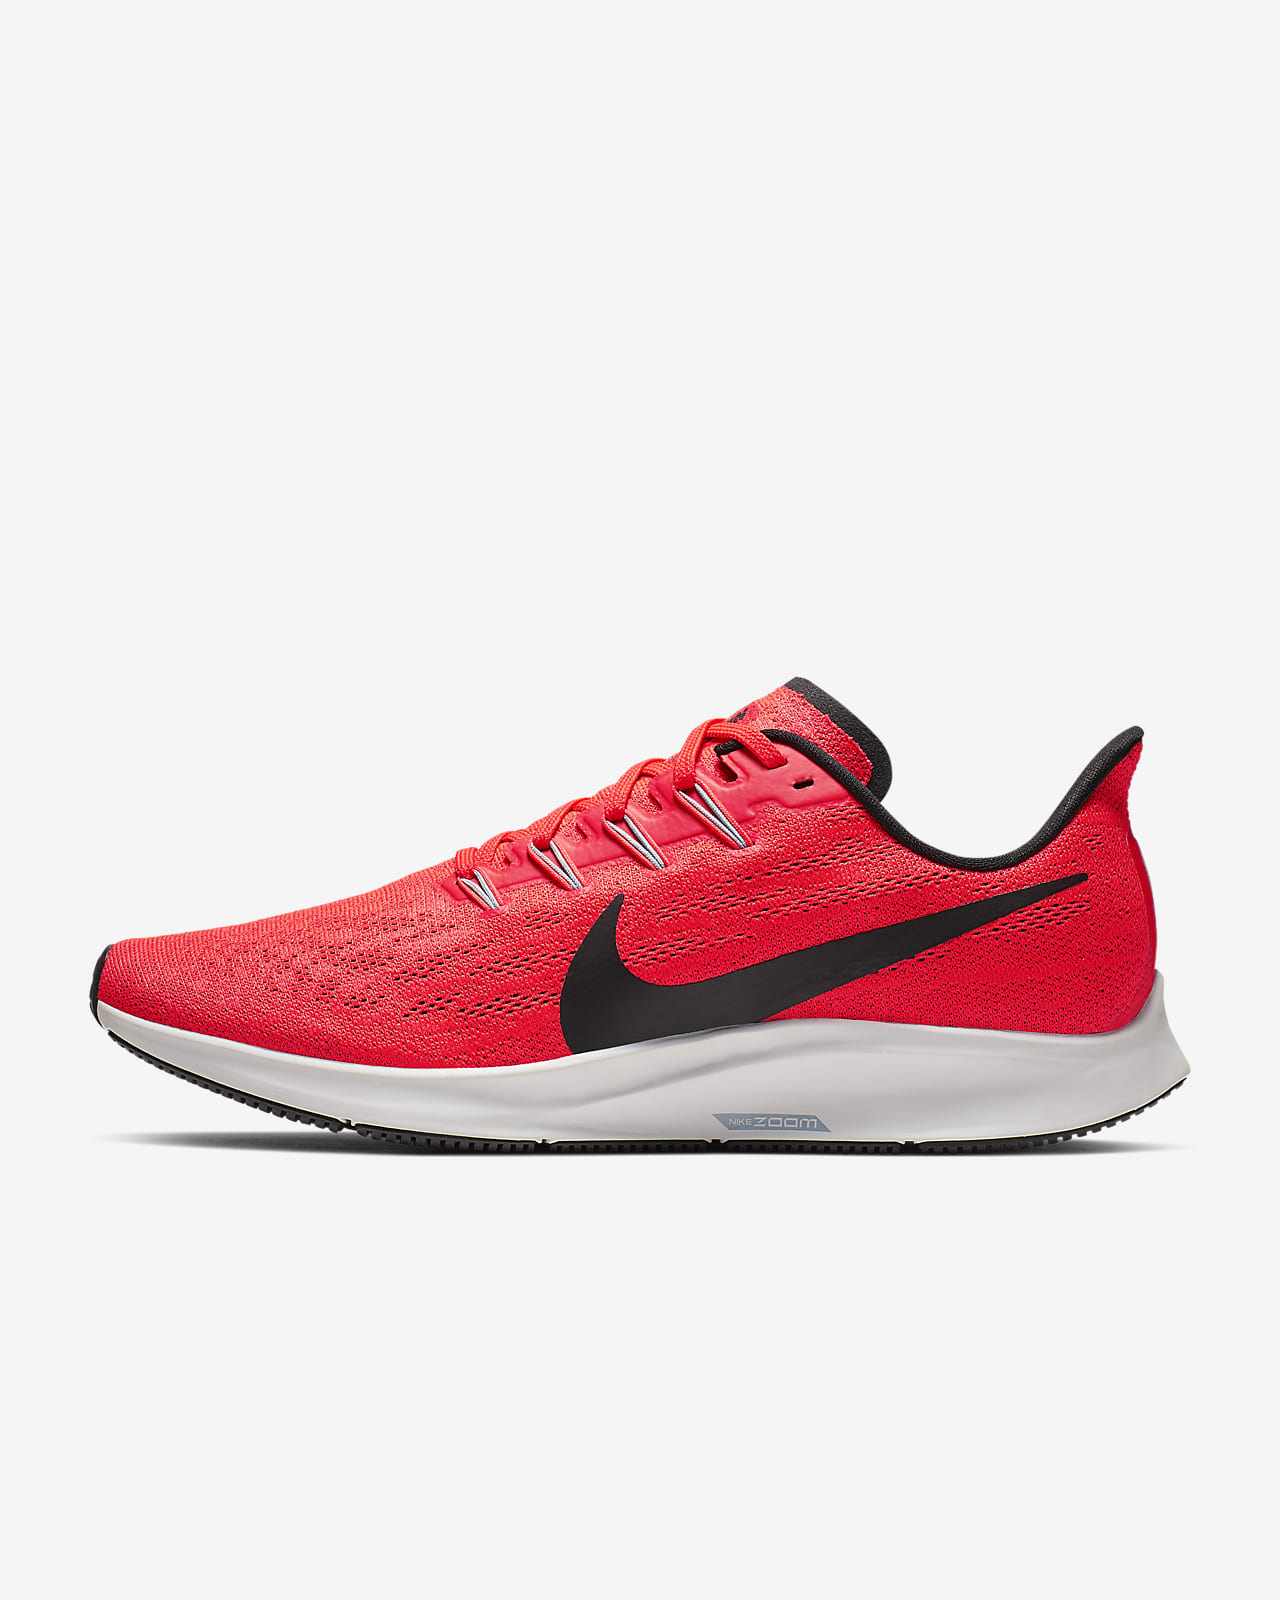 Nike Air Zoom Pegasus 36 男子跑步鞋